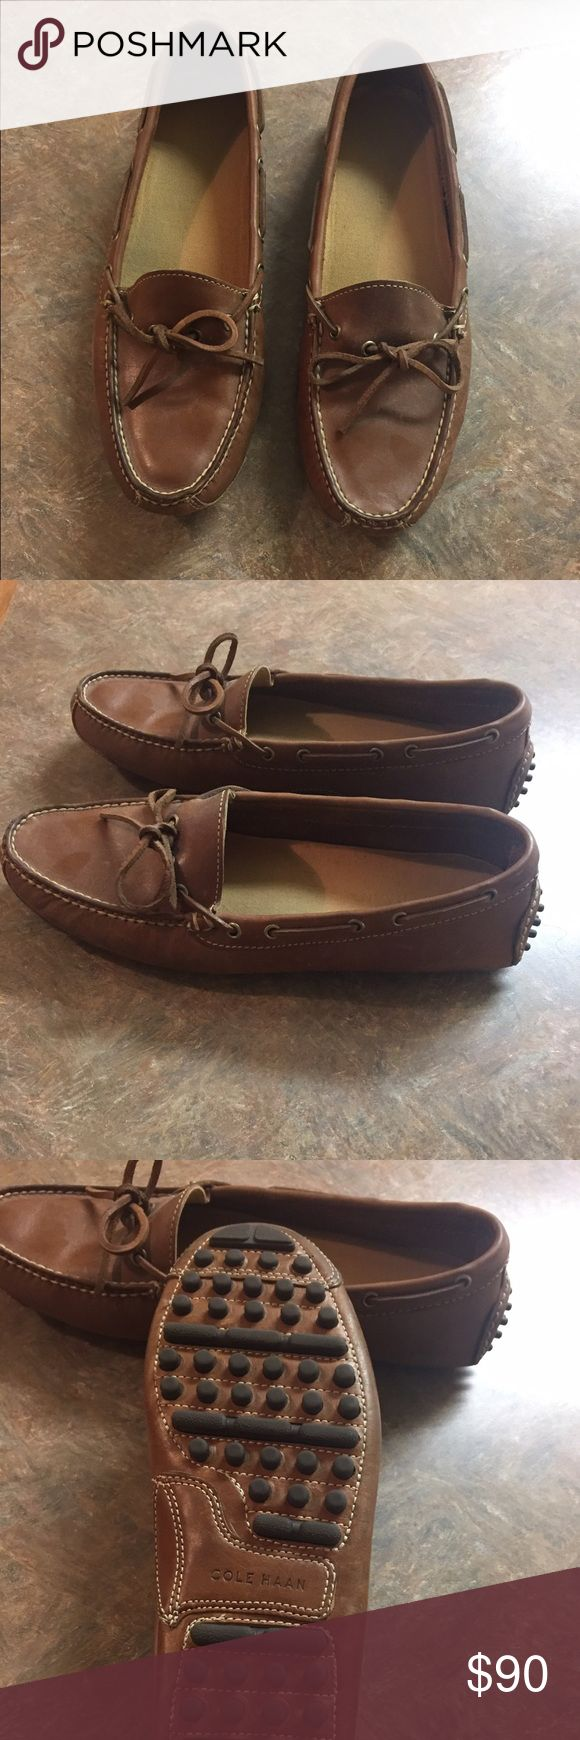 Cole Haan Grant Driver Very stylish shoe. Worn a few times but was the wrong size. Bought the same pair in a size bigger and very pleased with them. Cole Haan Shoes Loafers & Slip-Ons